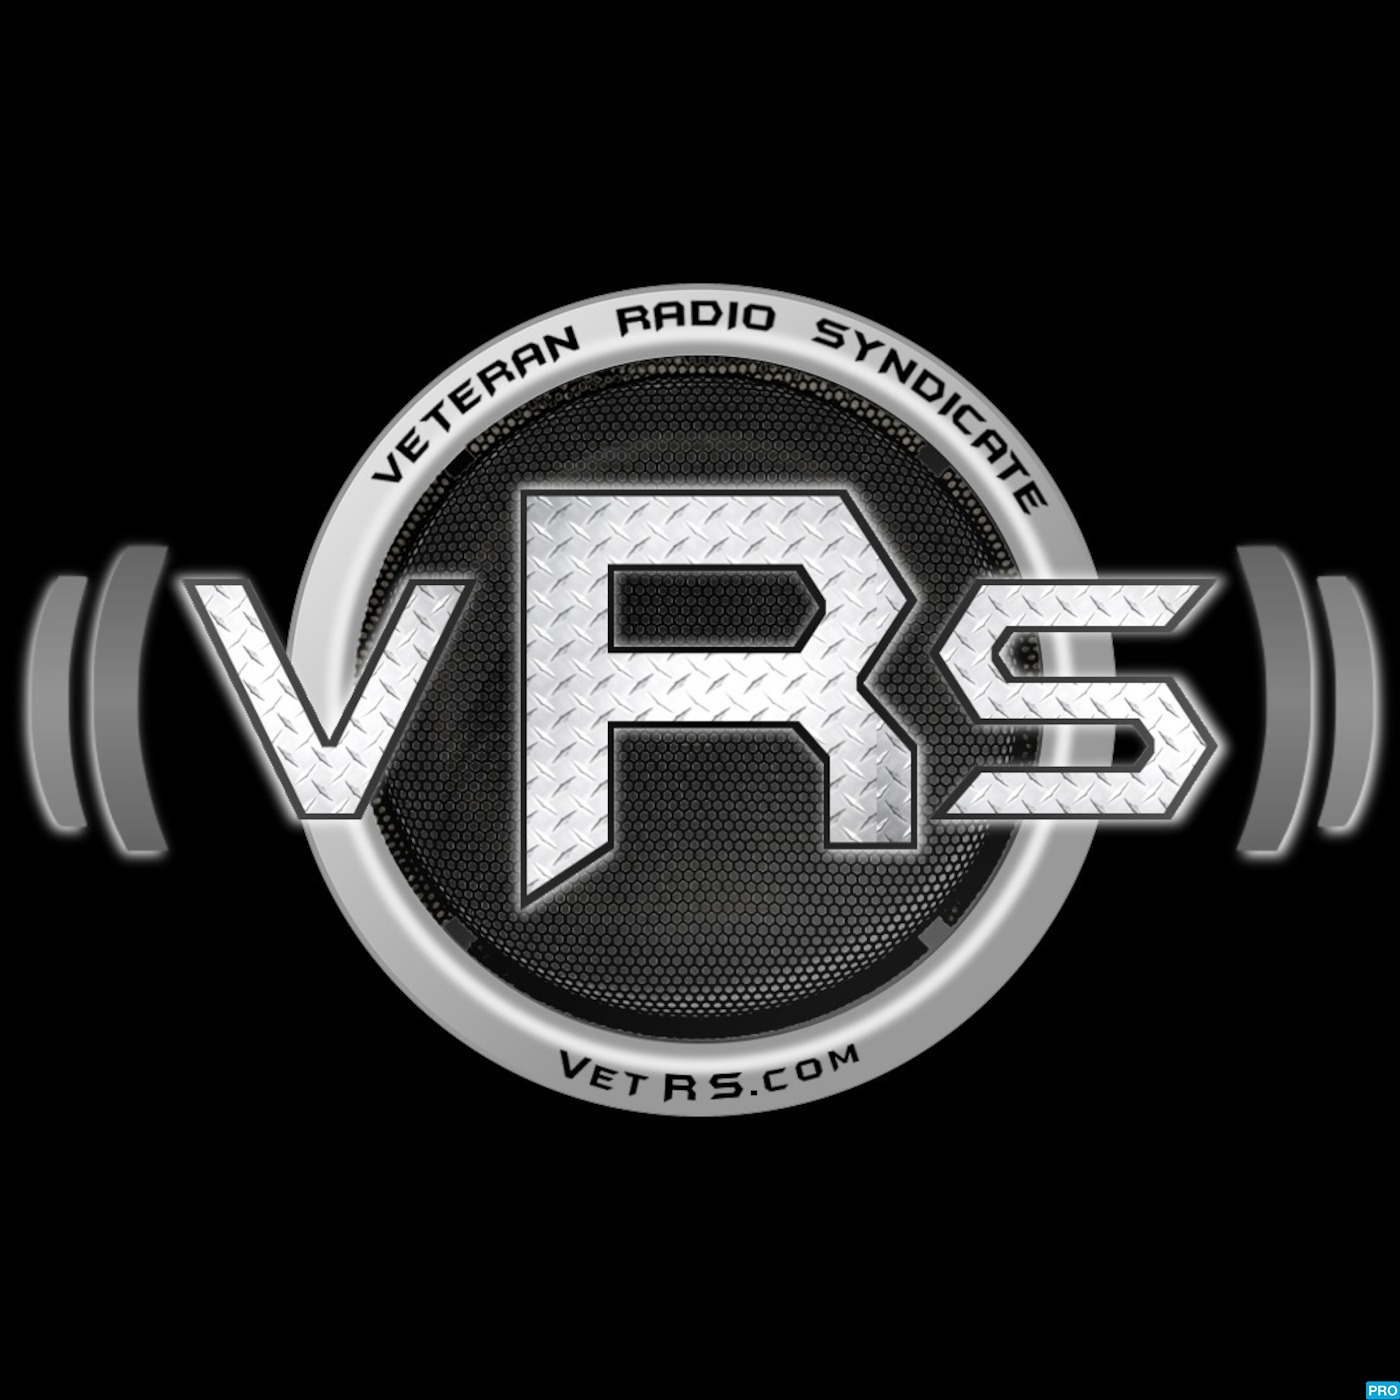 Veteran Radio Syndicate